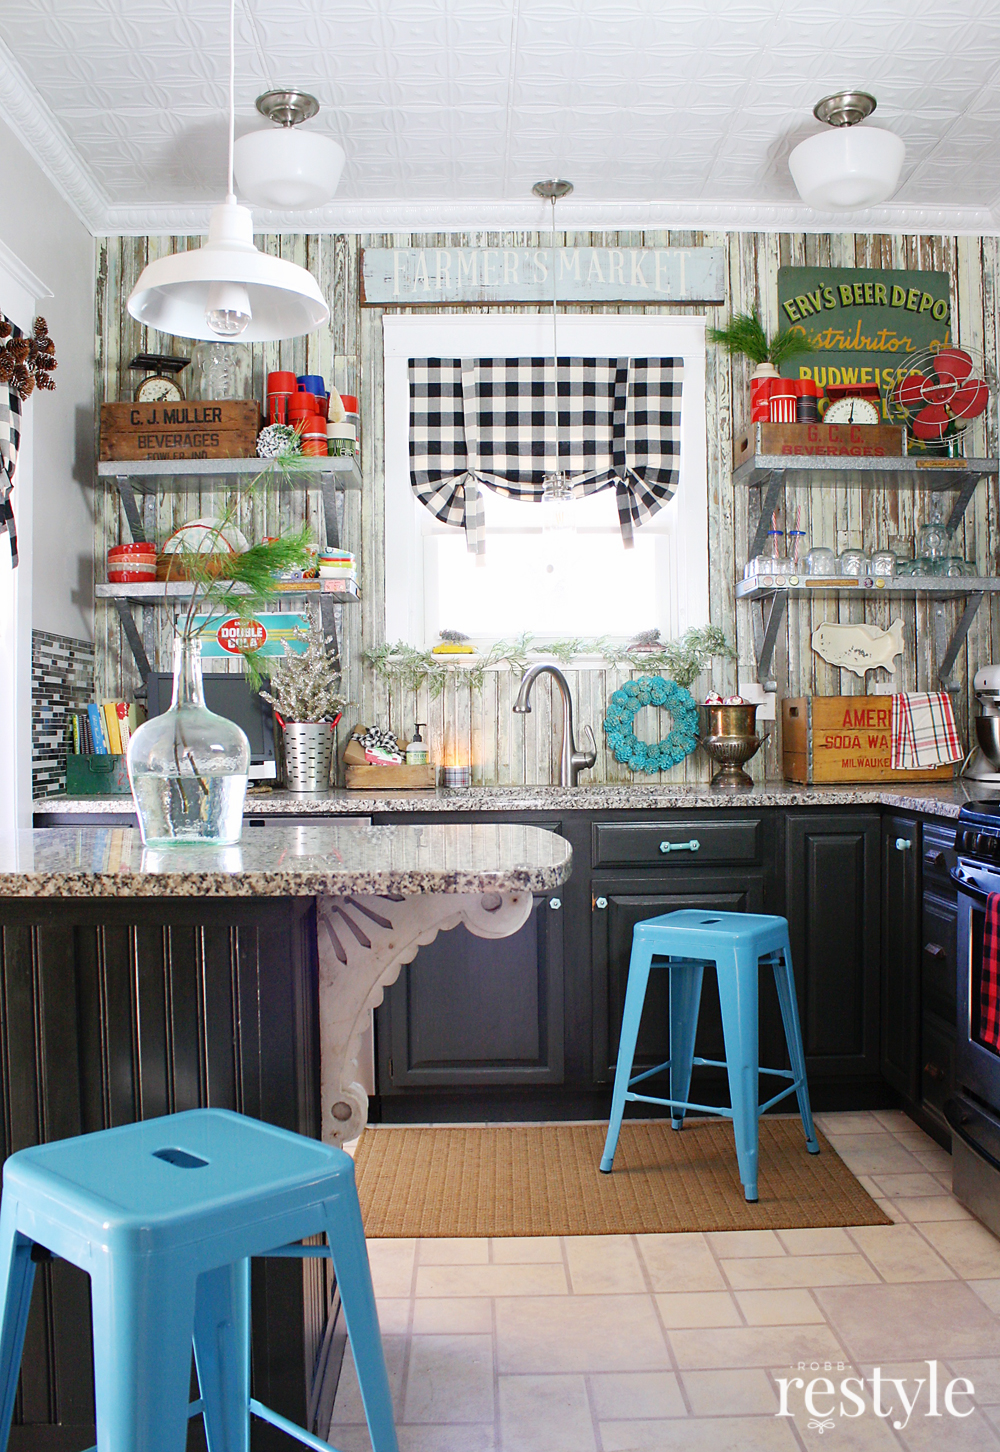 Eclectic Christmas Home Tour - love this colorful, vintage filled kitchen and the open galvanized shelves